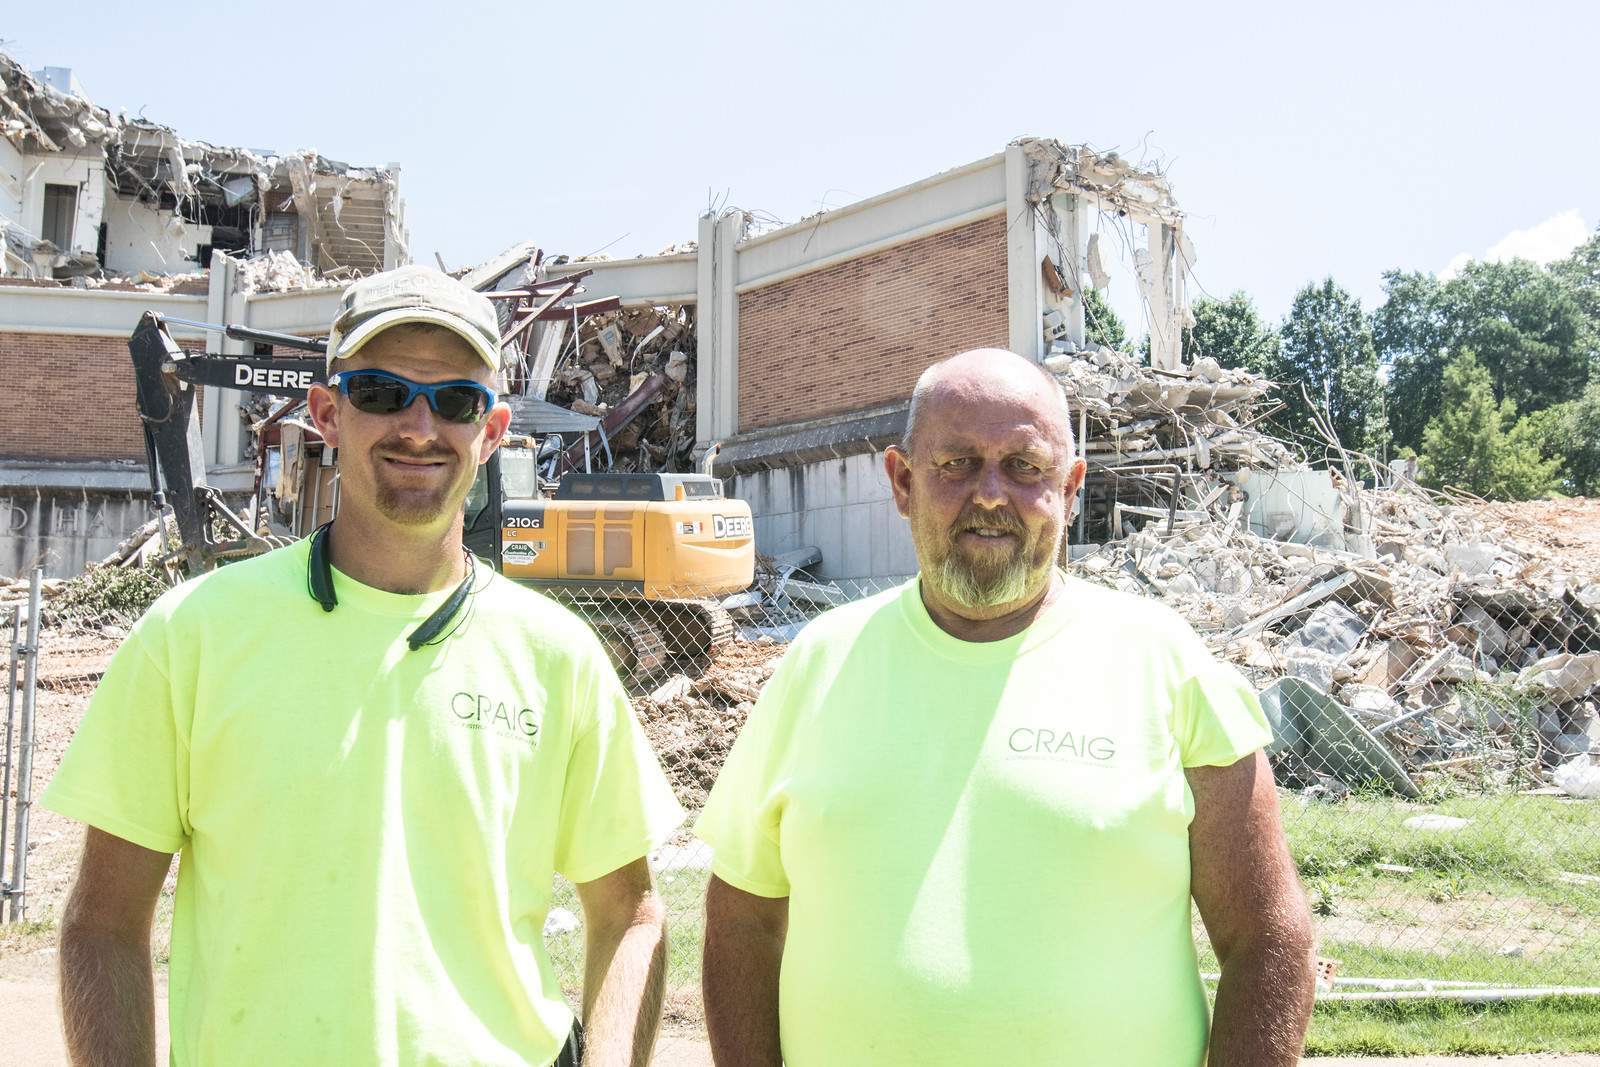 Ray and Mike Phillips, Father and Son, operators of excavators